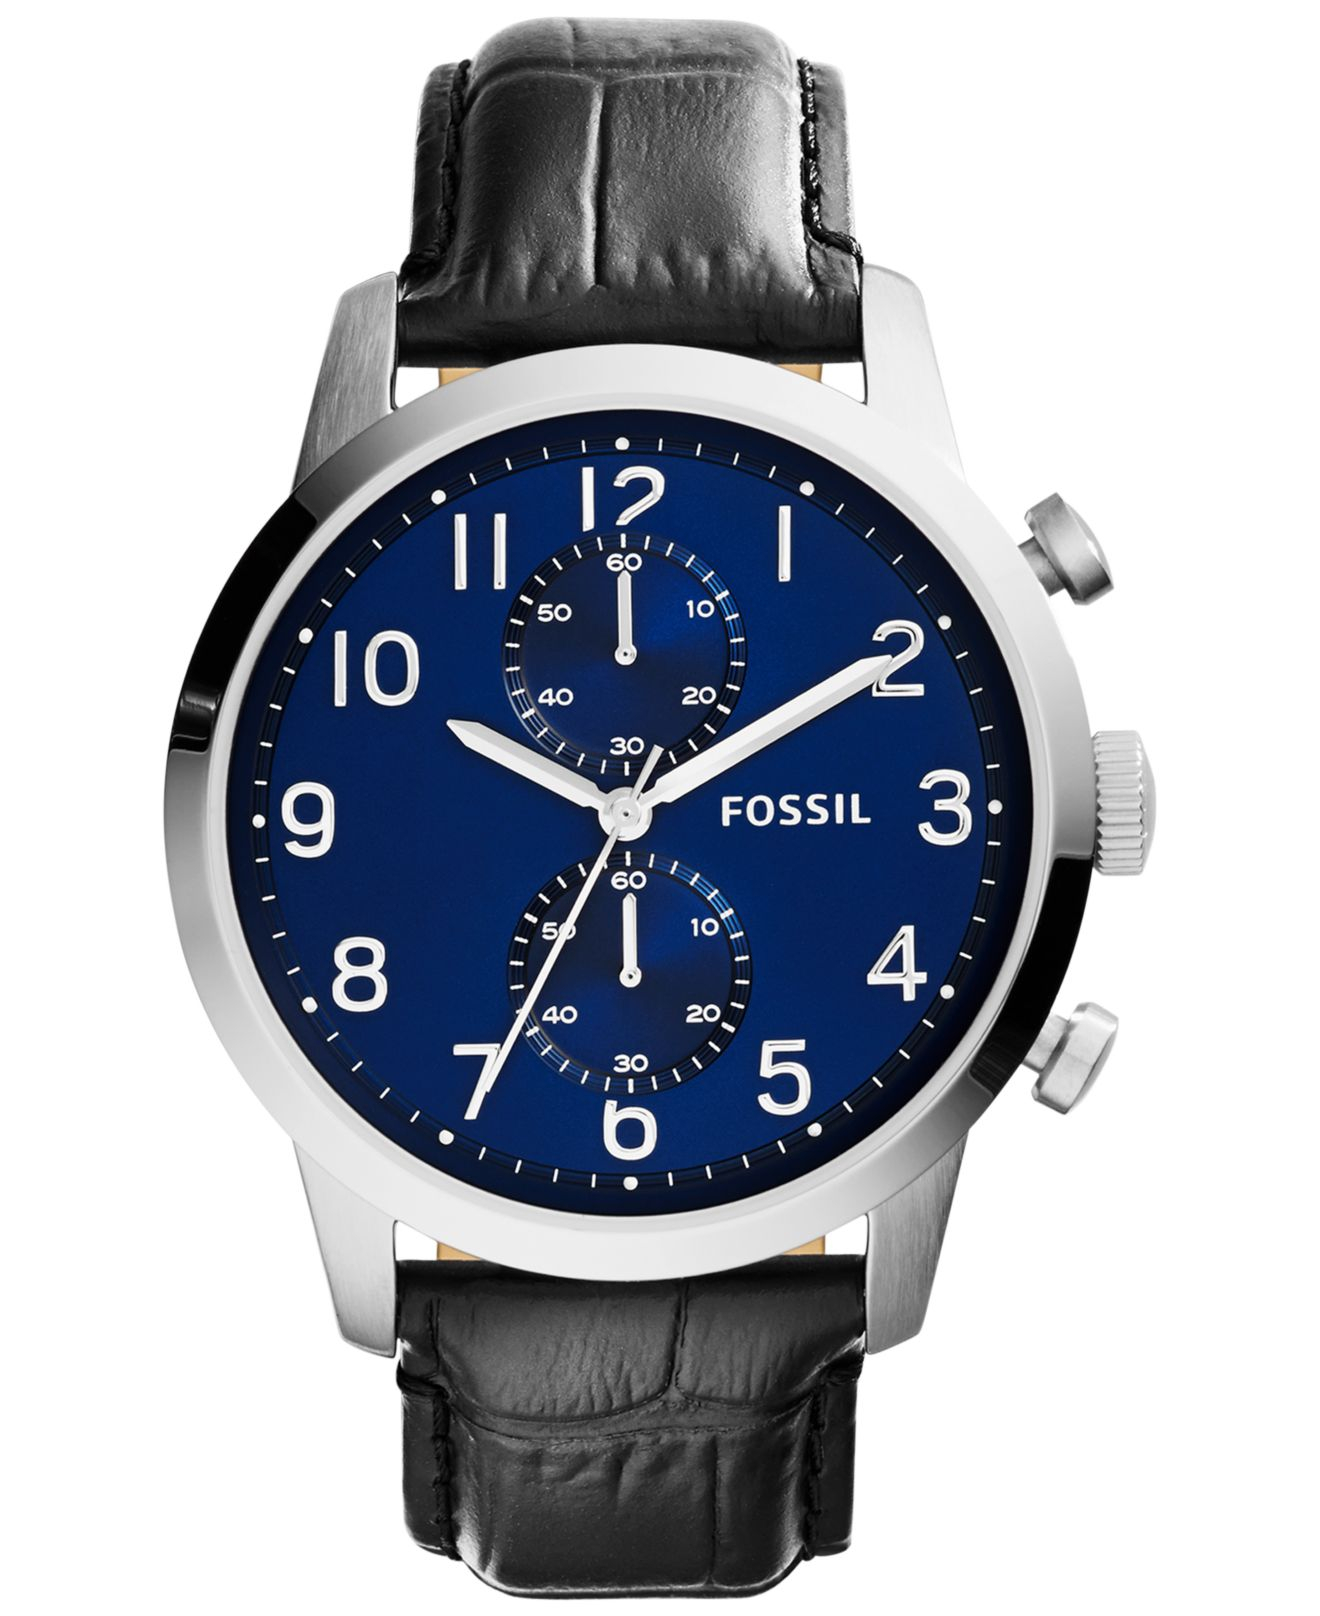 Thread fs fossil townsman automatic black leather strap me3104 men s - Gallery Of Thread Fs Fossil Townsman Automatic Black Leather Strap Me3104 Men S